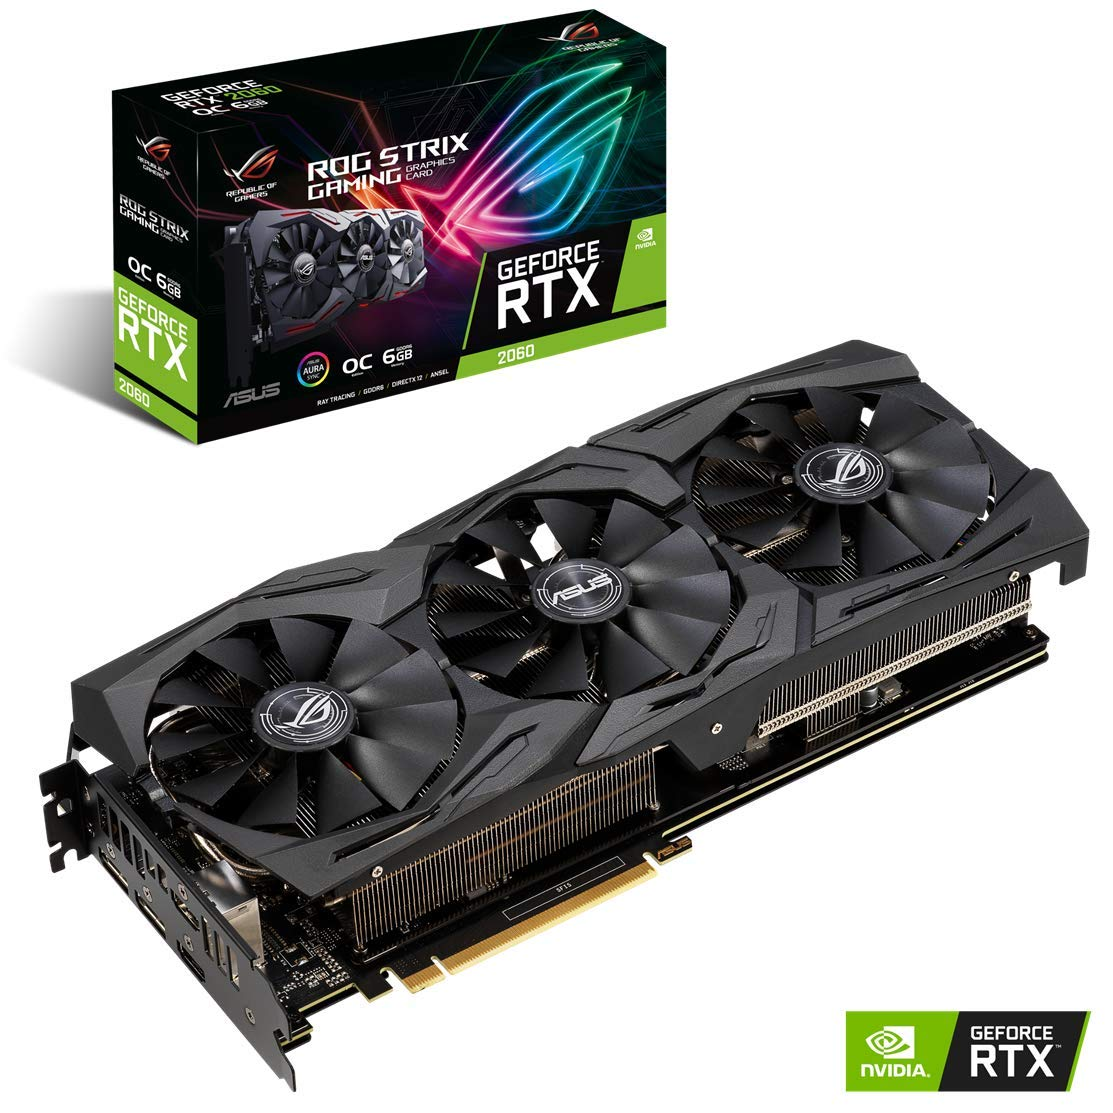 ASUS ROG STRIX GeForce RTX 2060 Overclocked 6G GDDR6 HDMI DP 1.4 Gaming Graphics Card (ROG-STRIX-RTX-2060-O6G)